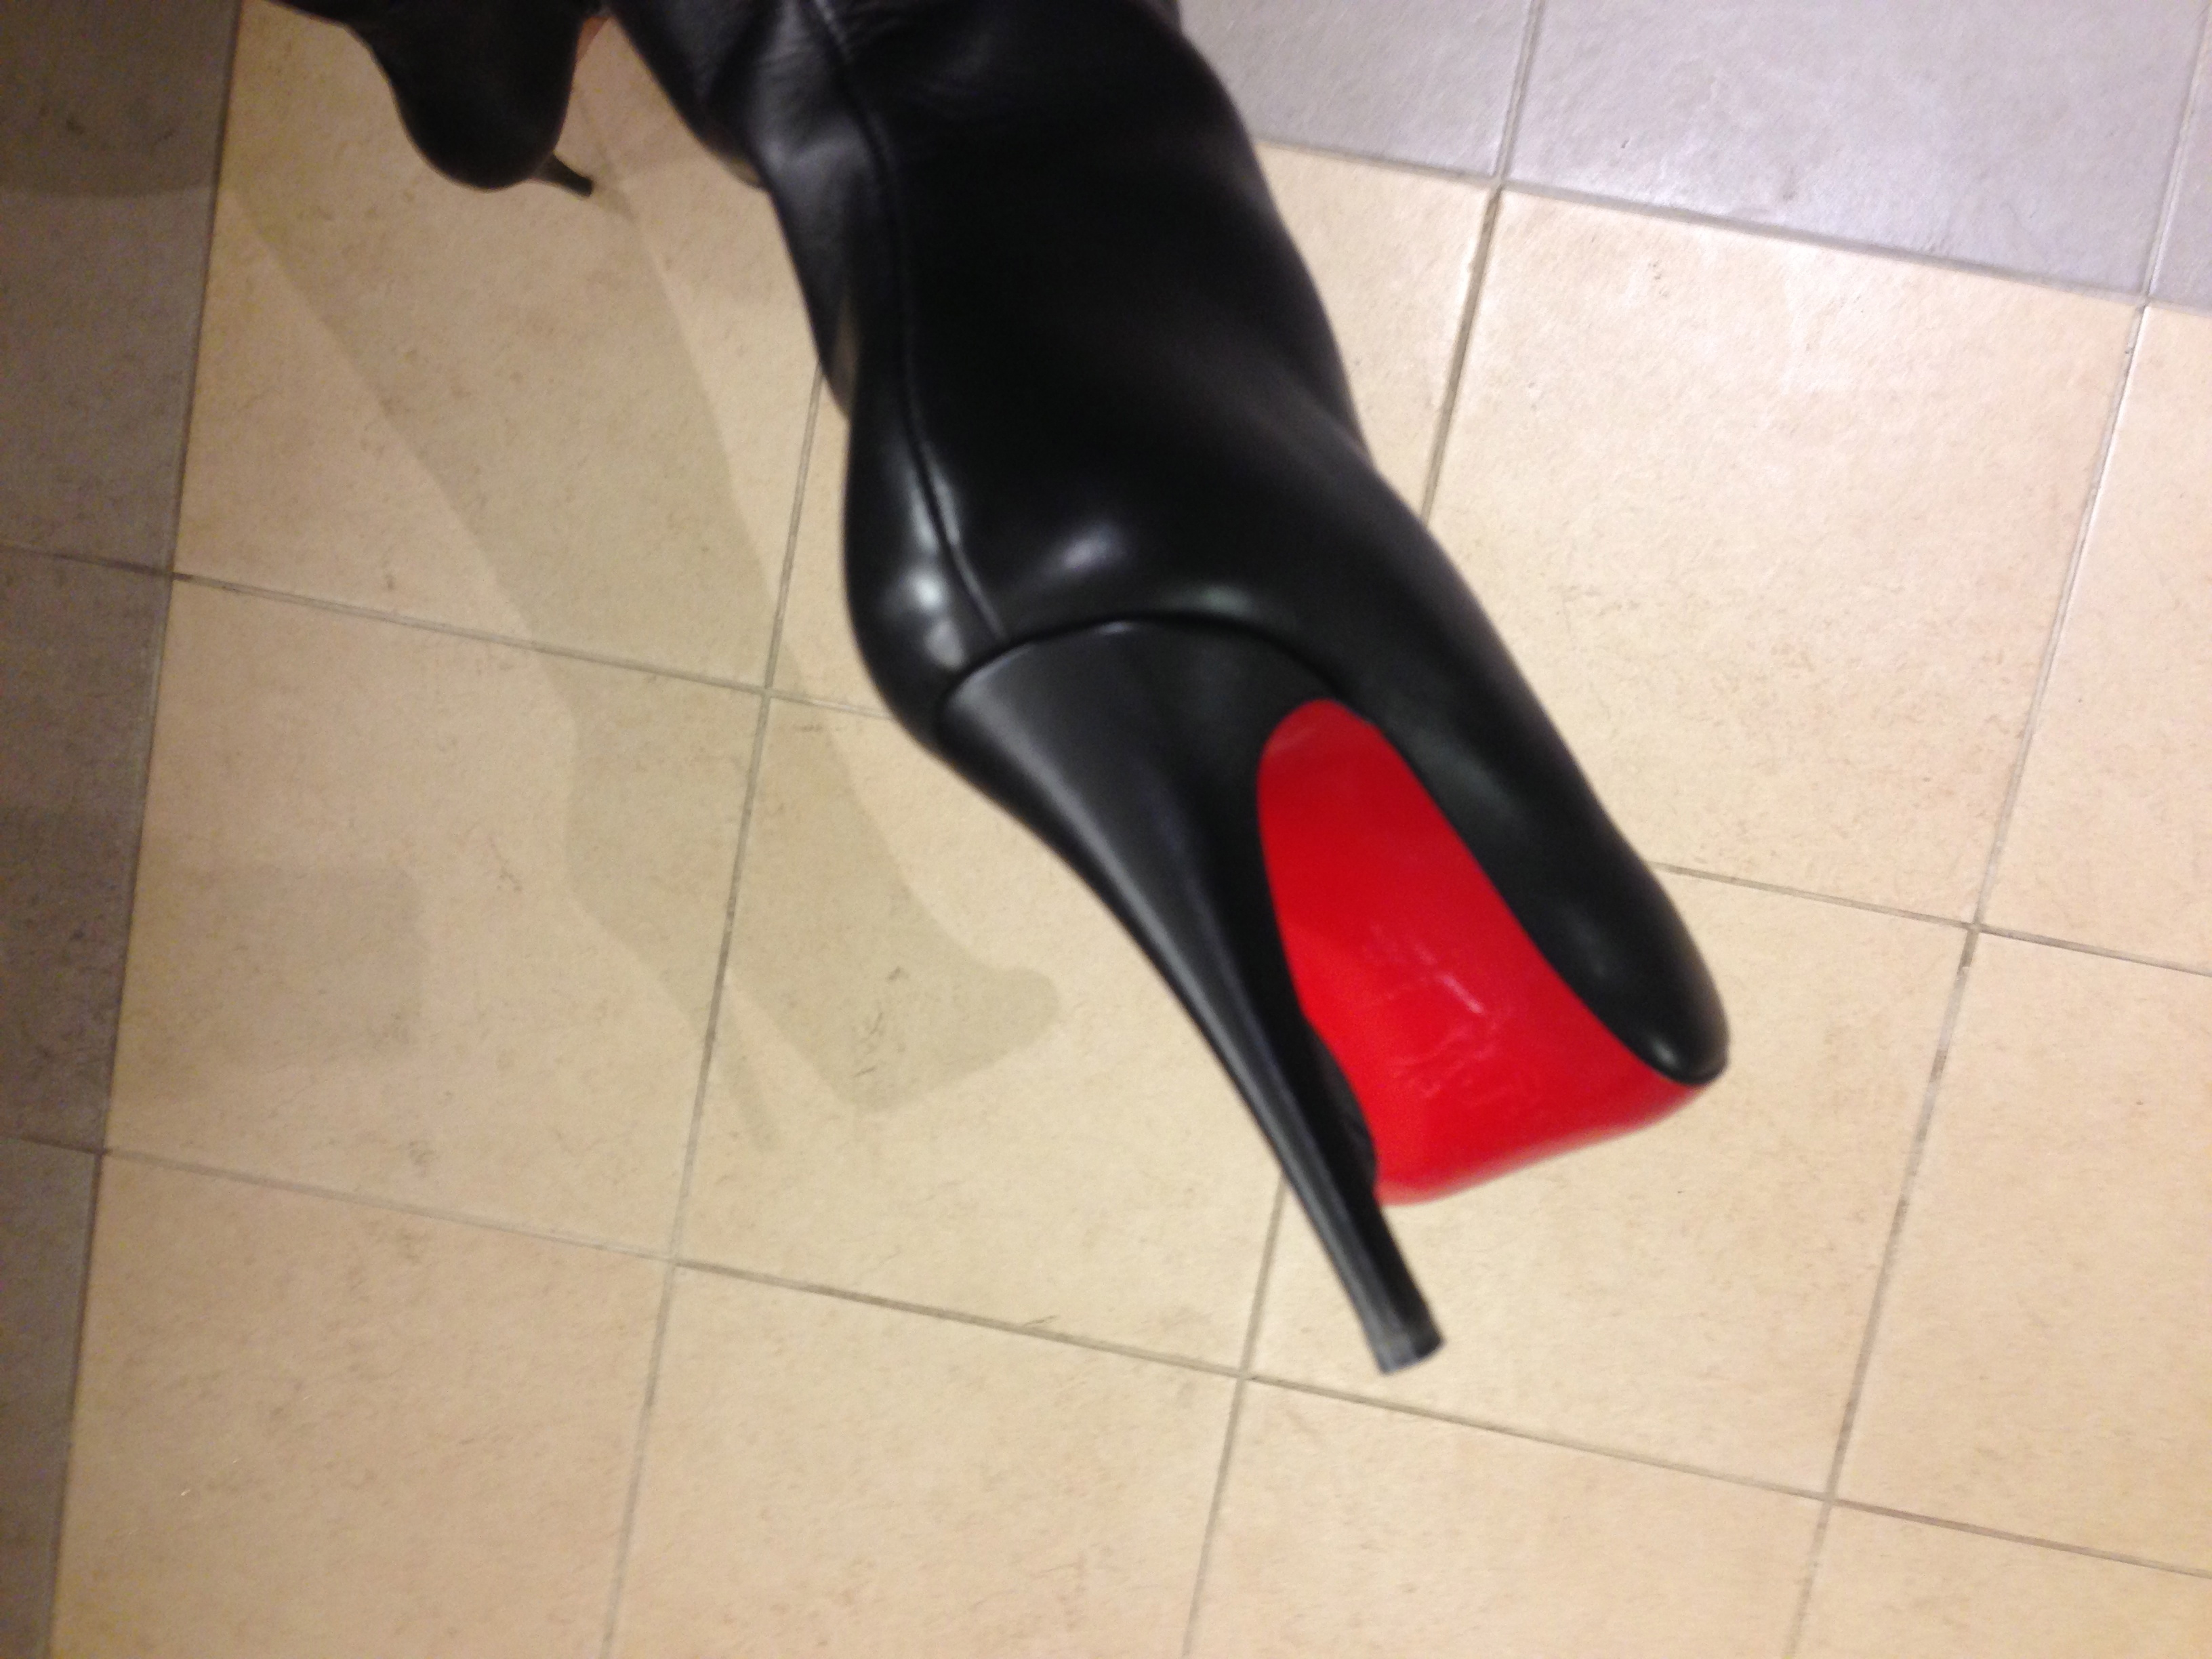 competitive price 2e0b0 81397 Embrace the red soles | Hot Heels, Cool Kicks, & a Scalpel